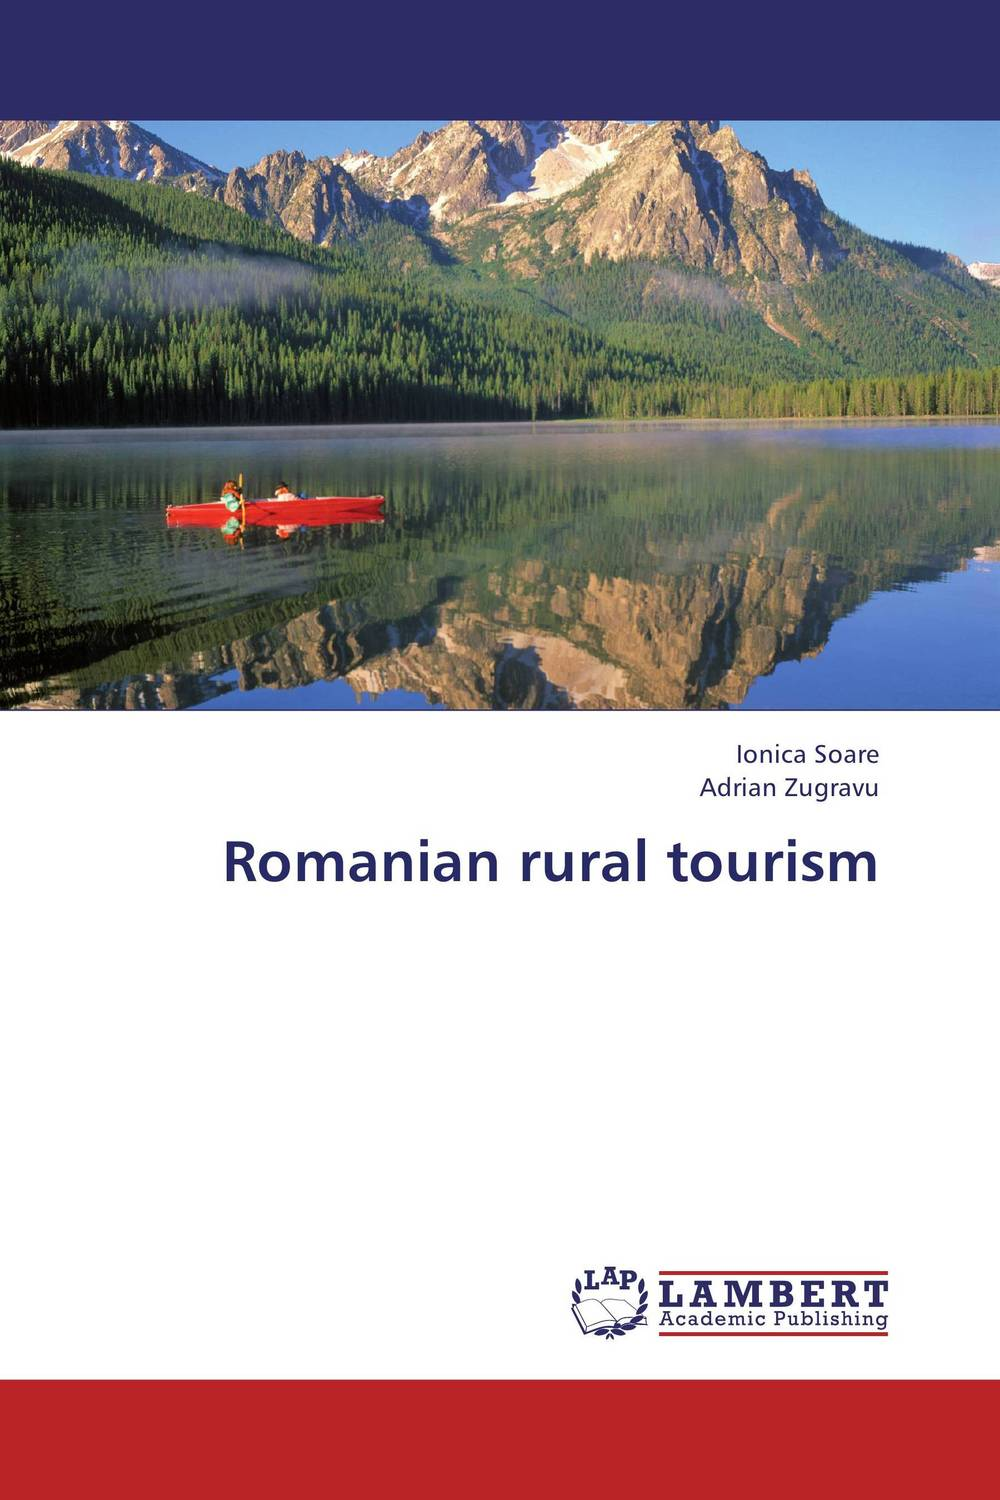 Romanian rural tourism